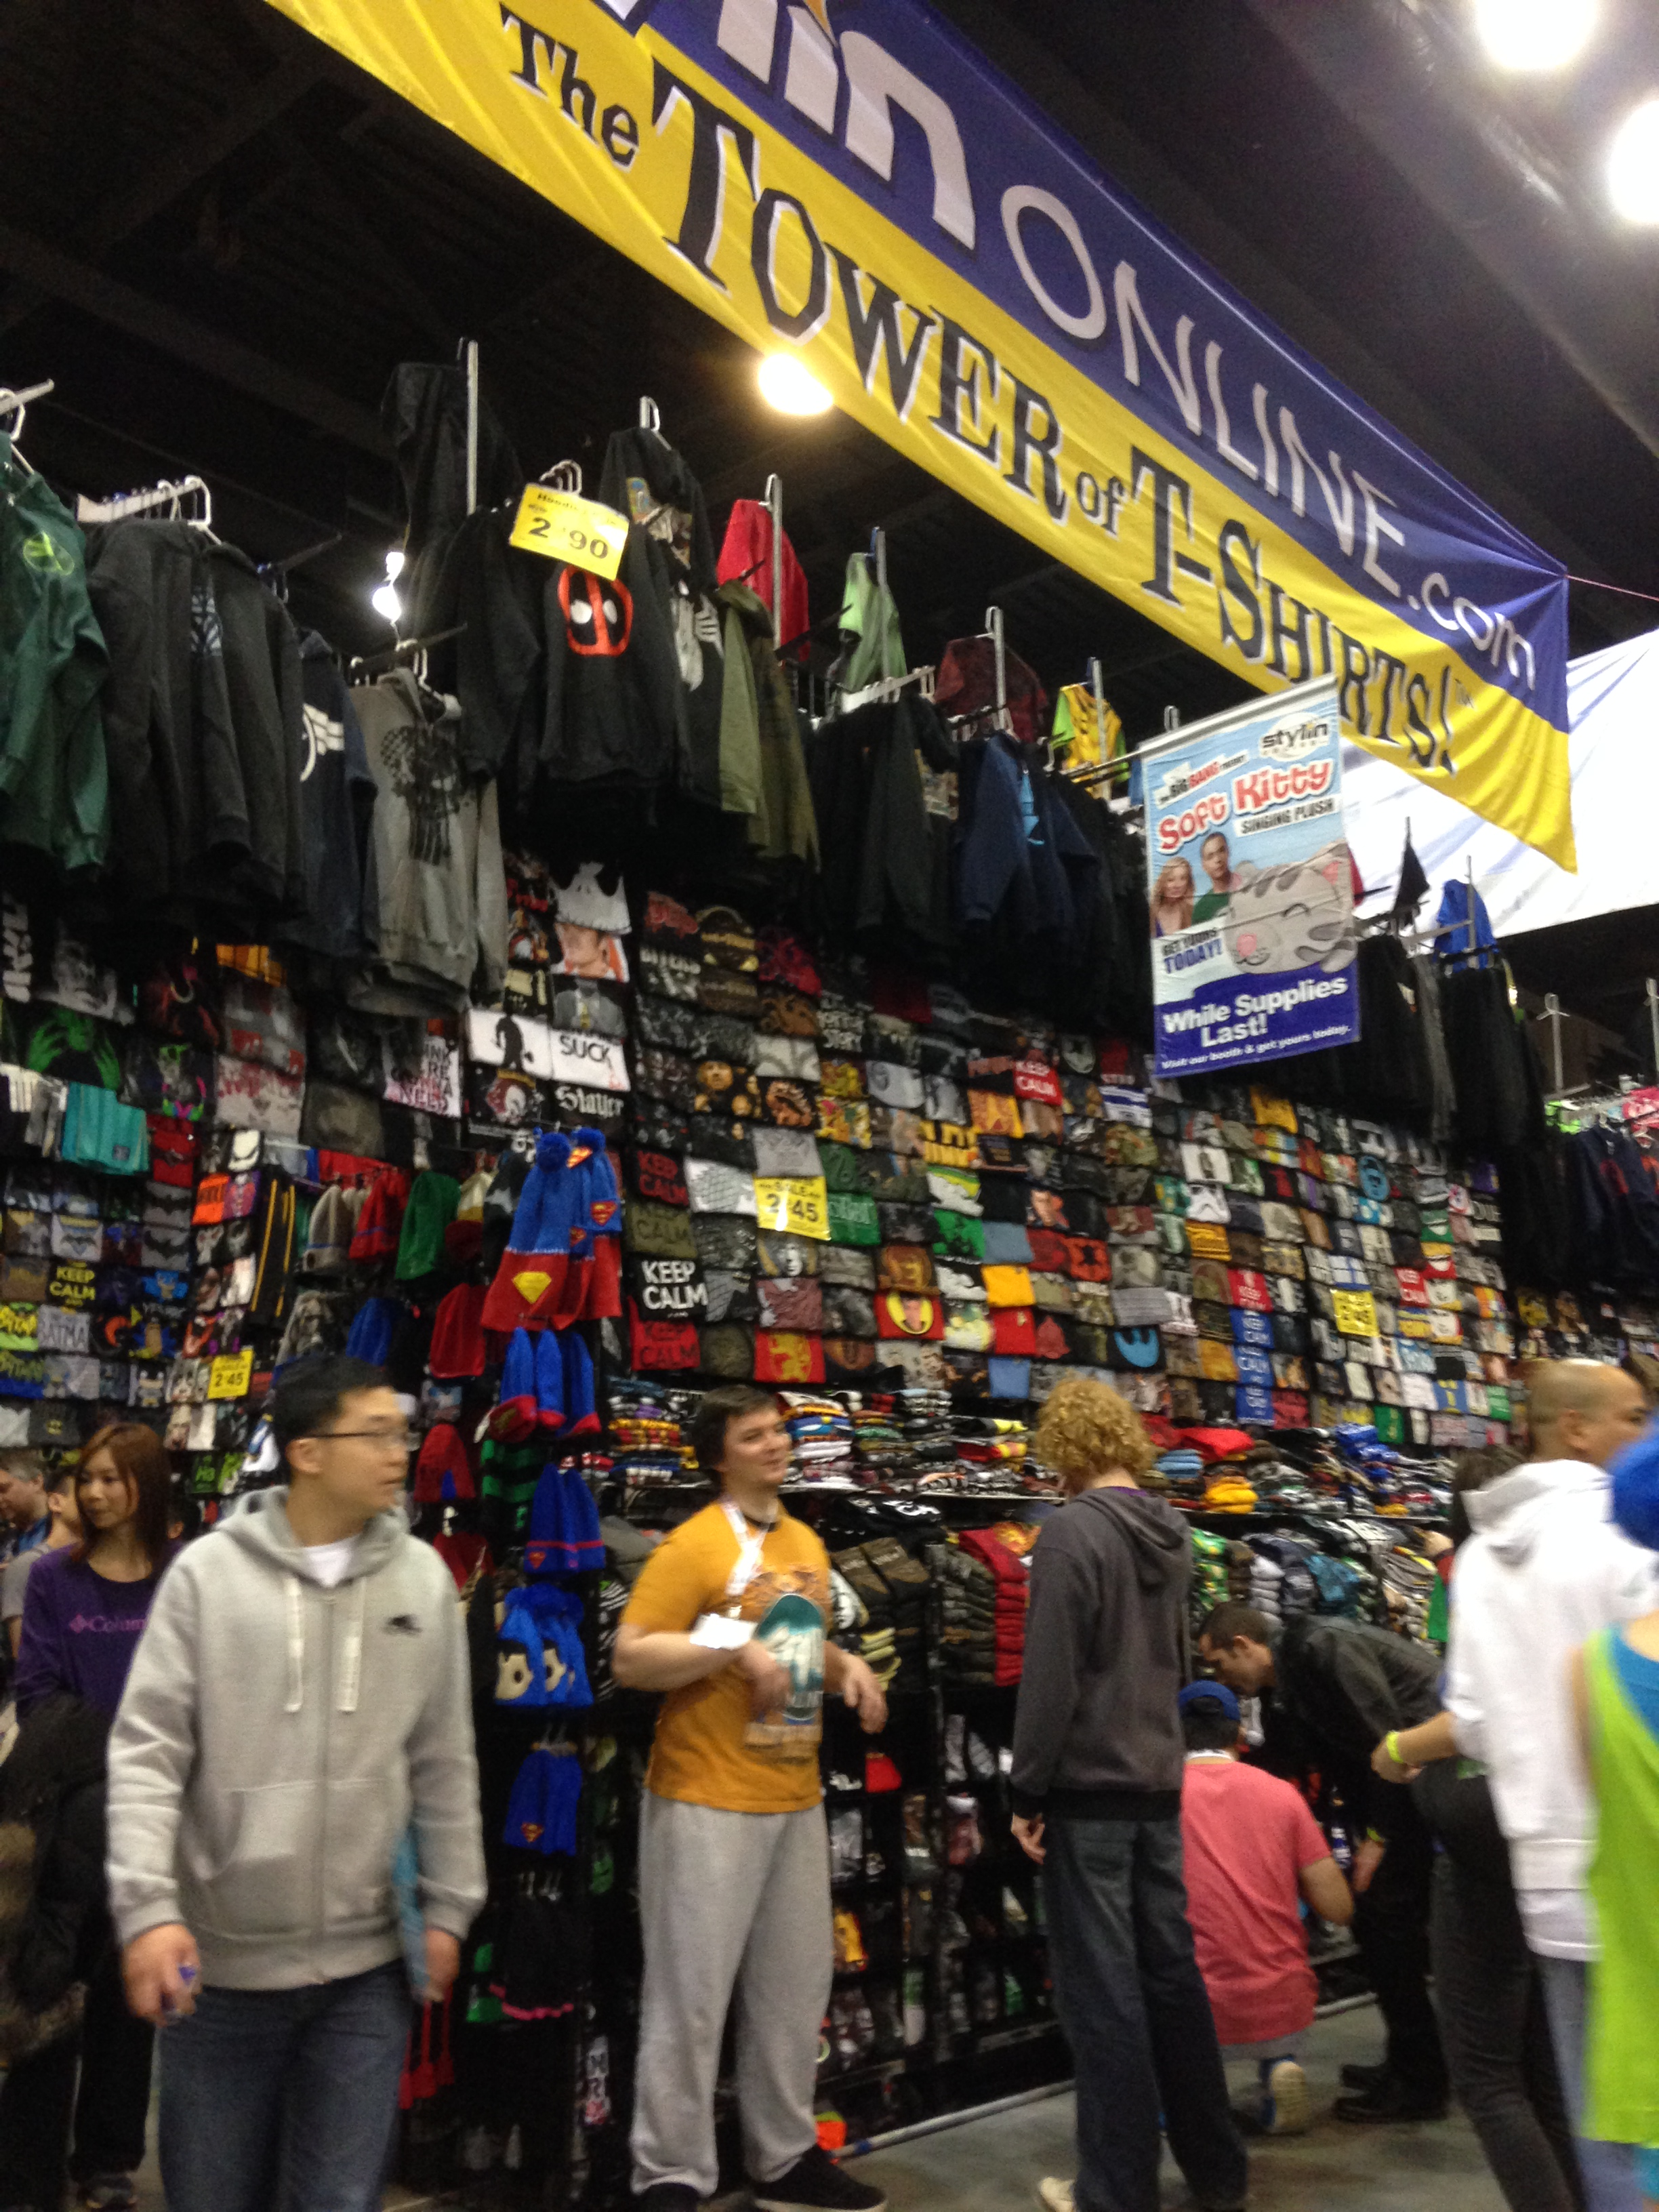 Need some garb......massive Tower of Shirts, Hats and more.